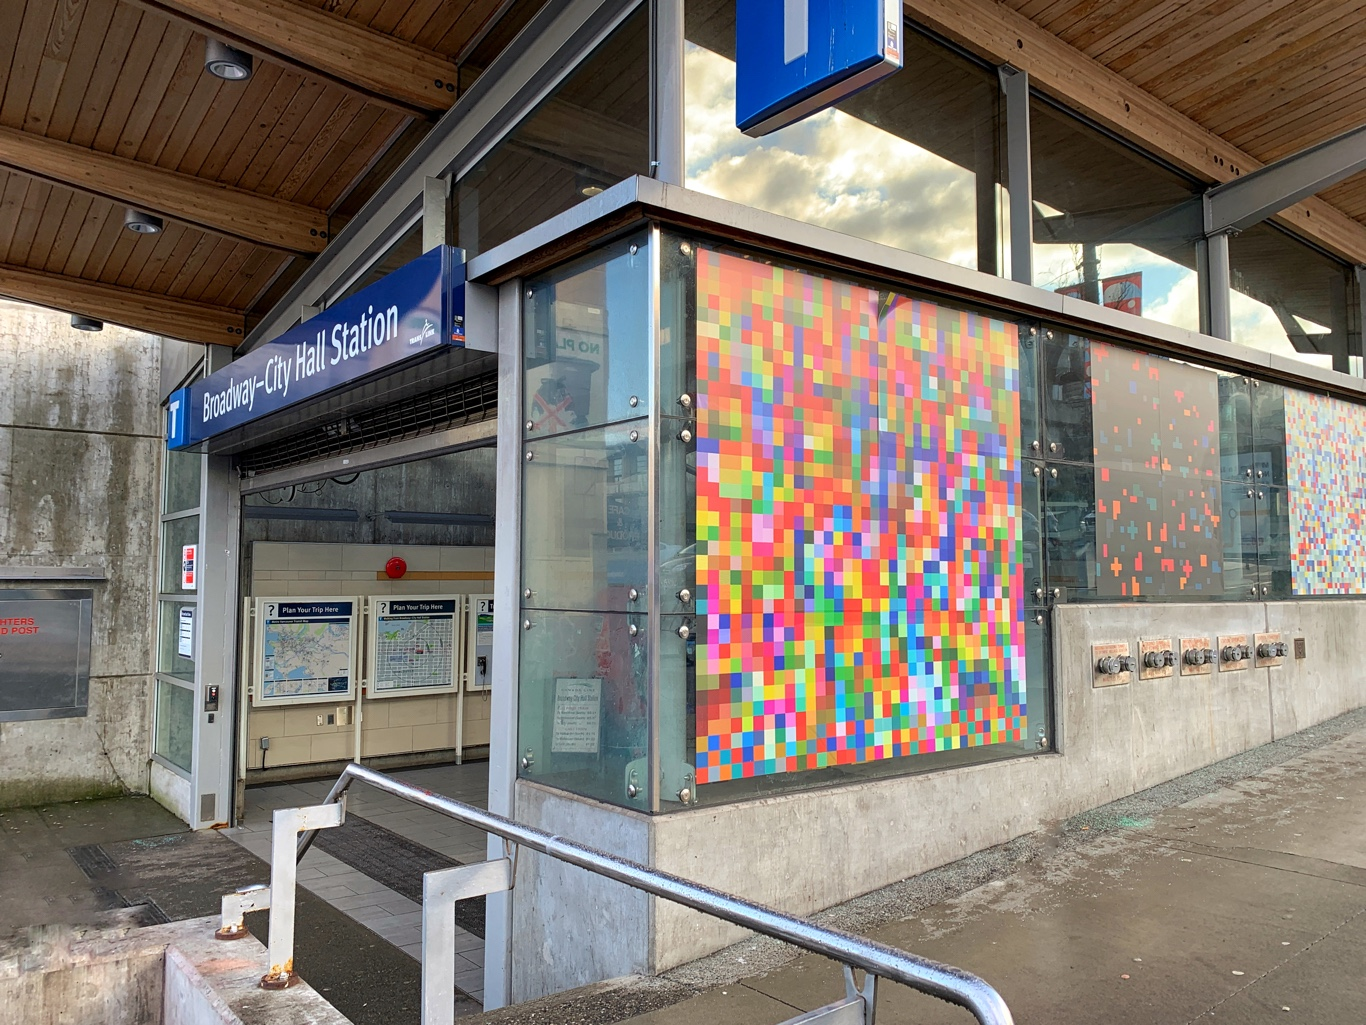 Peter Owusu-Ansah at the Broadway-City Hall Skytrain Station